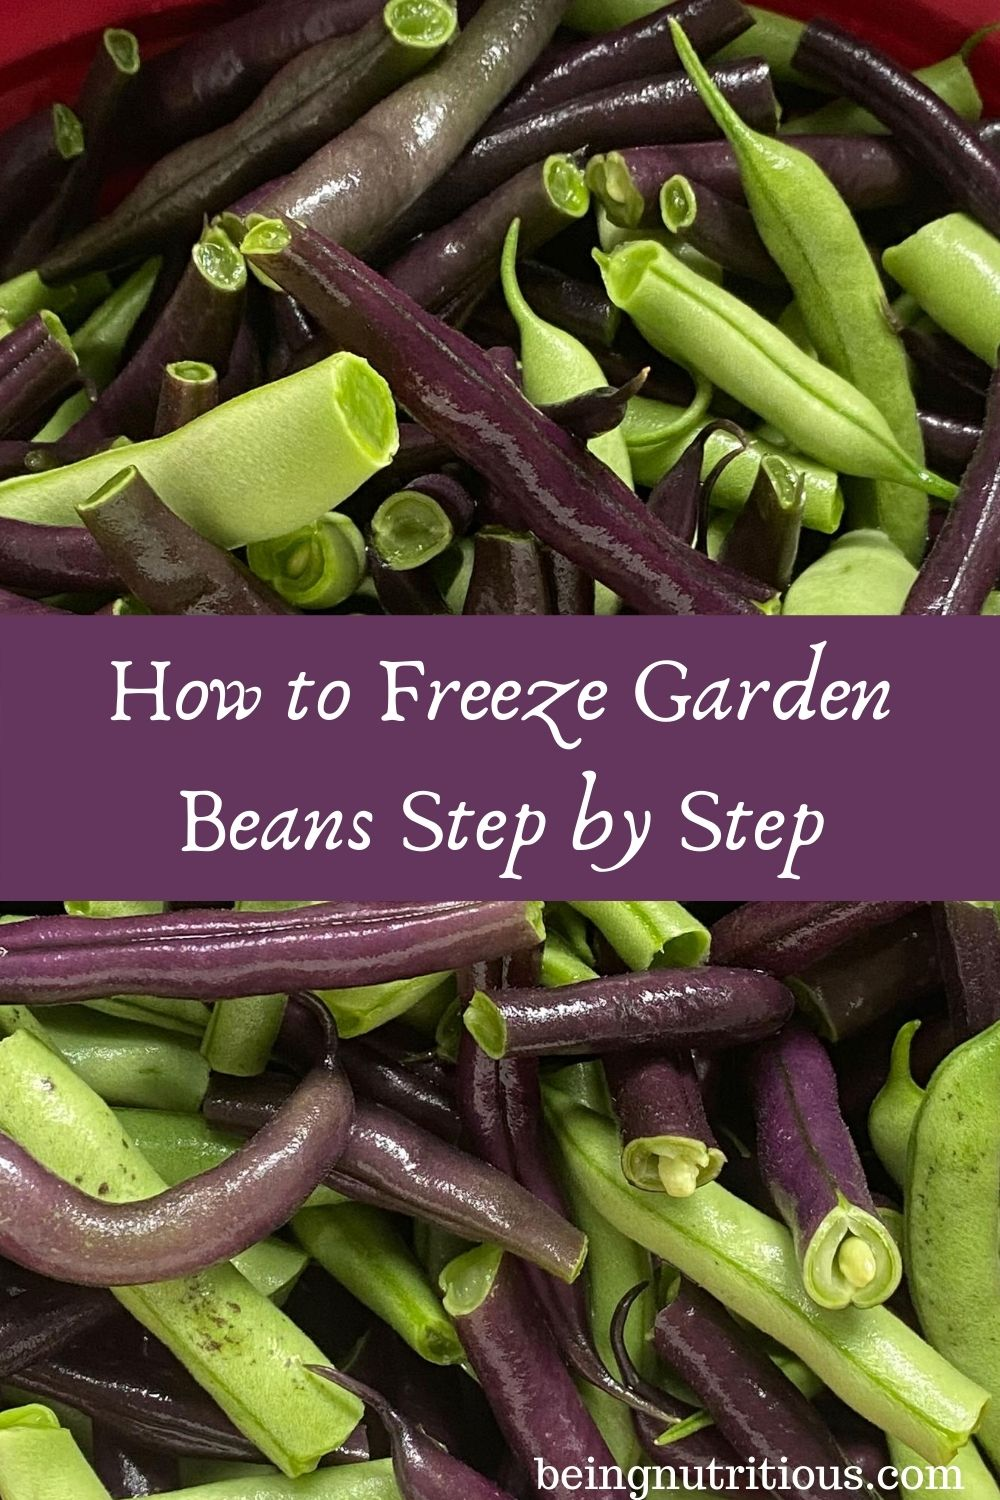 Close up of fresh beans, trimmed and snapped. Text overlay in purple rectangle: How to Freeze Garden Beans Step by Step.